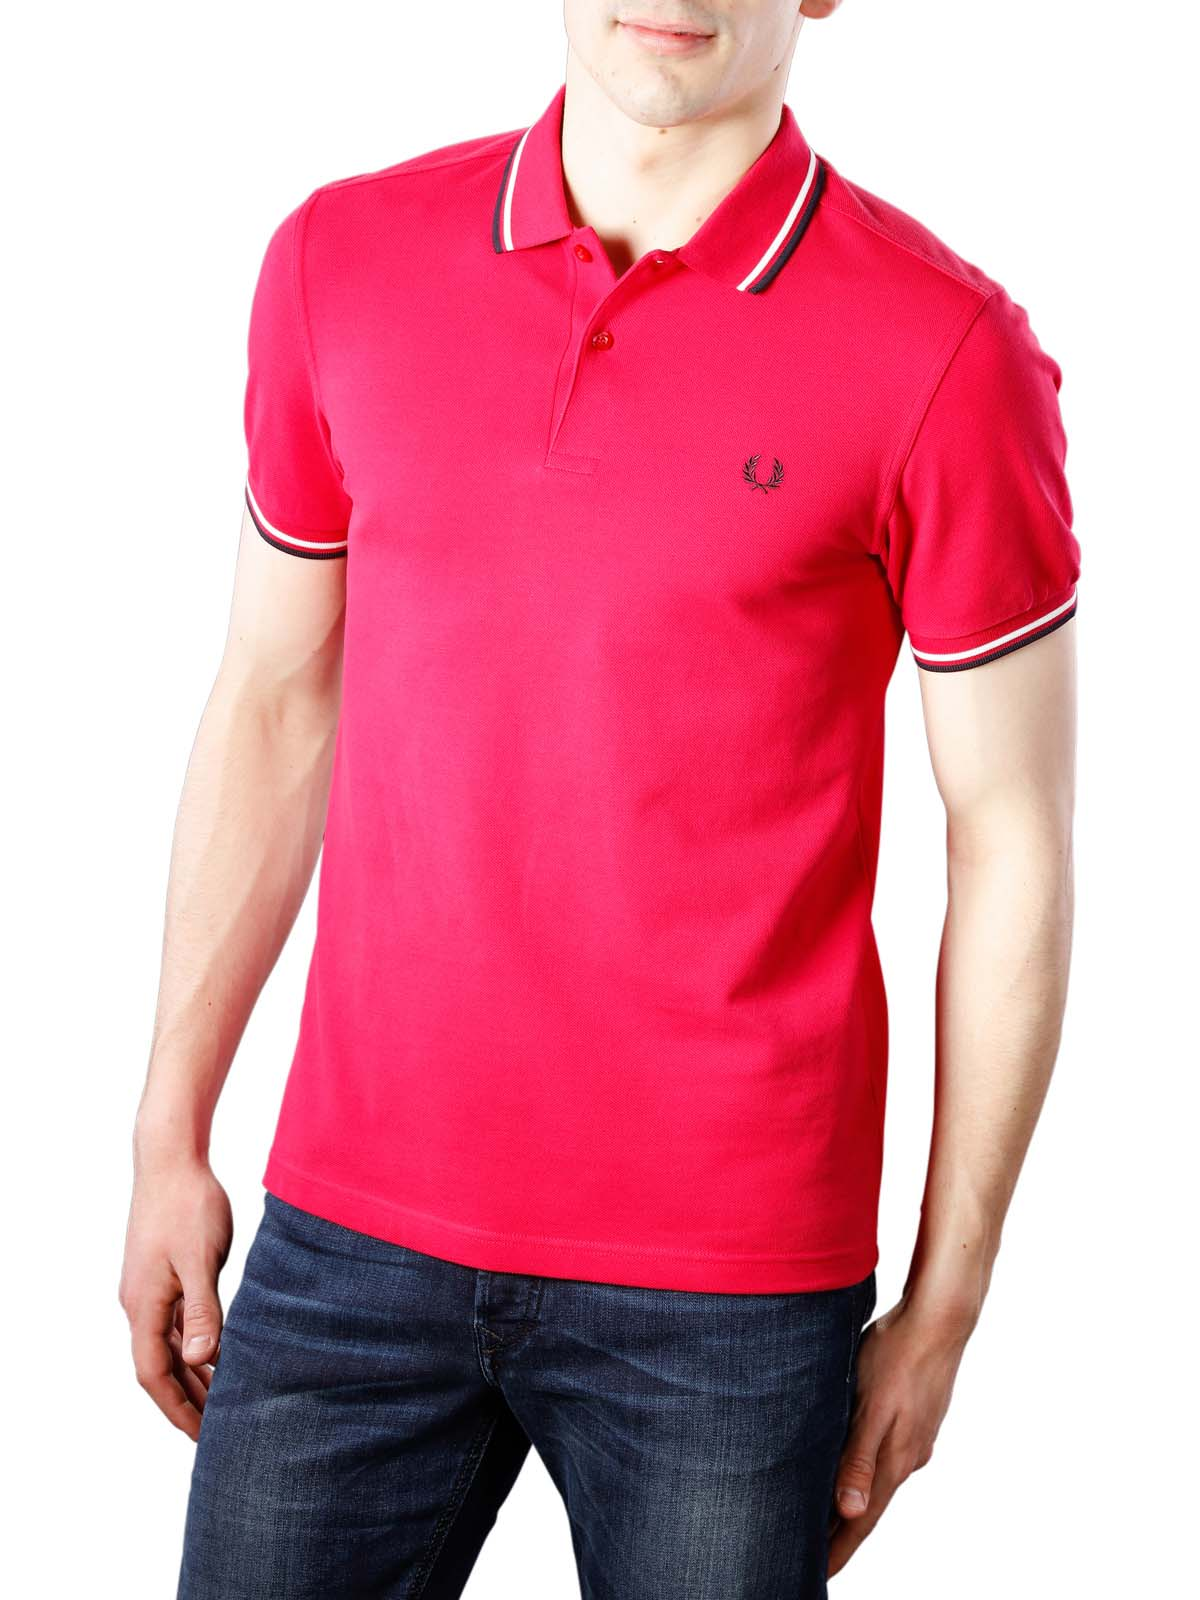 4cfd6a5a3295 Fred Perry Twin Tipped Polo Shirt terracotta/white/navy ...